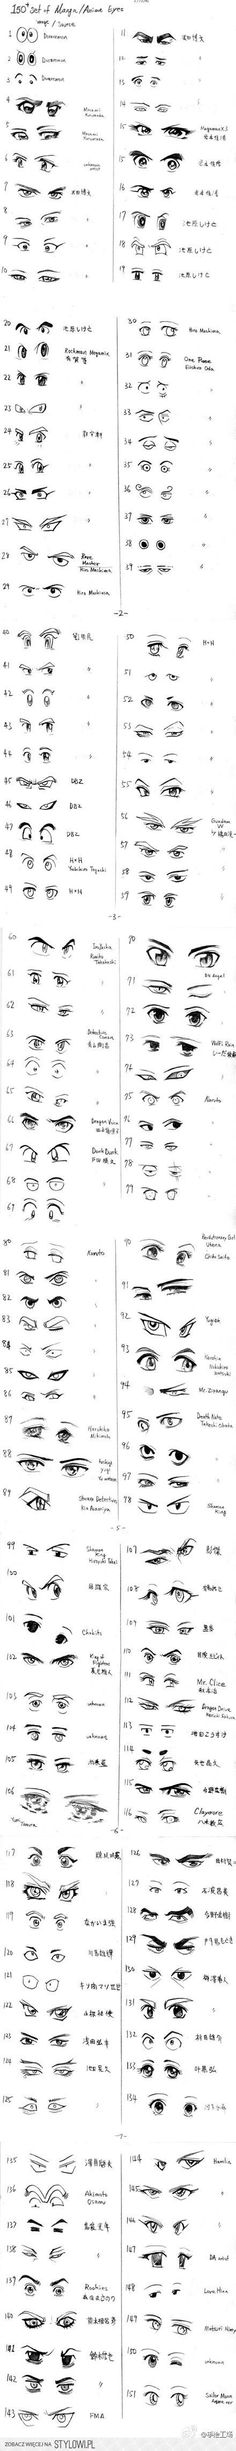 34 Ideas Drawing Reference Animals Manga Eyes For 2019 Eye Drawing, Cartoon Drawings, Art Drawings, Drawings, Manga Drawing, Design Reference, Drawing Tips, Art Tutorials, Anime Drawings